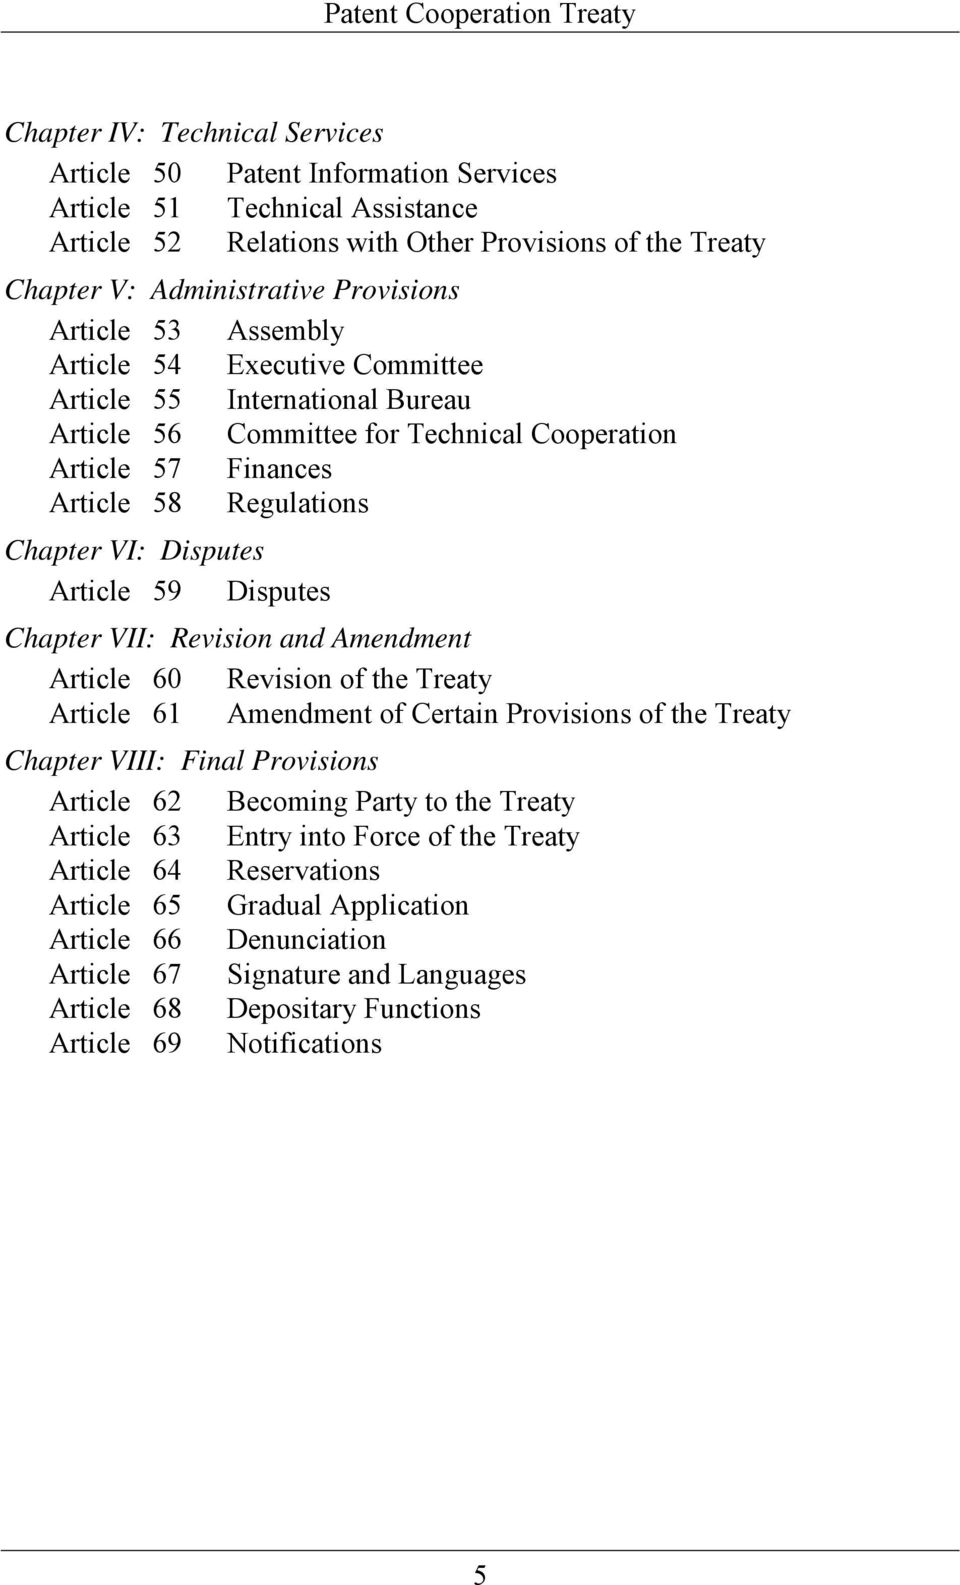 Article 59 Disputes Chapter VII: Revision and Amendment Article 60 Revision of the Treaty Article 61 Amendment of Certain Provisions of the Treaty Chapter VIII: Final Provisions Article 62 Becoming